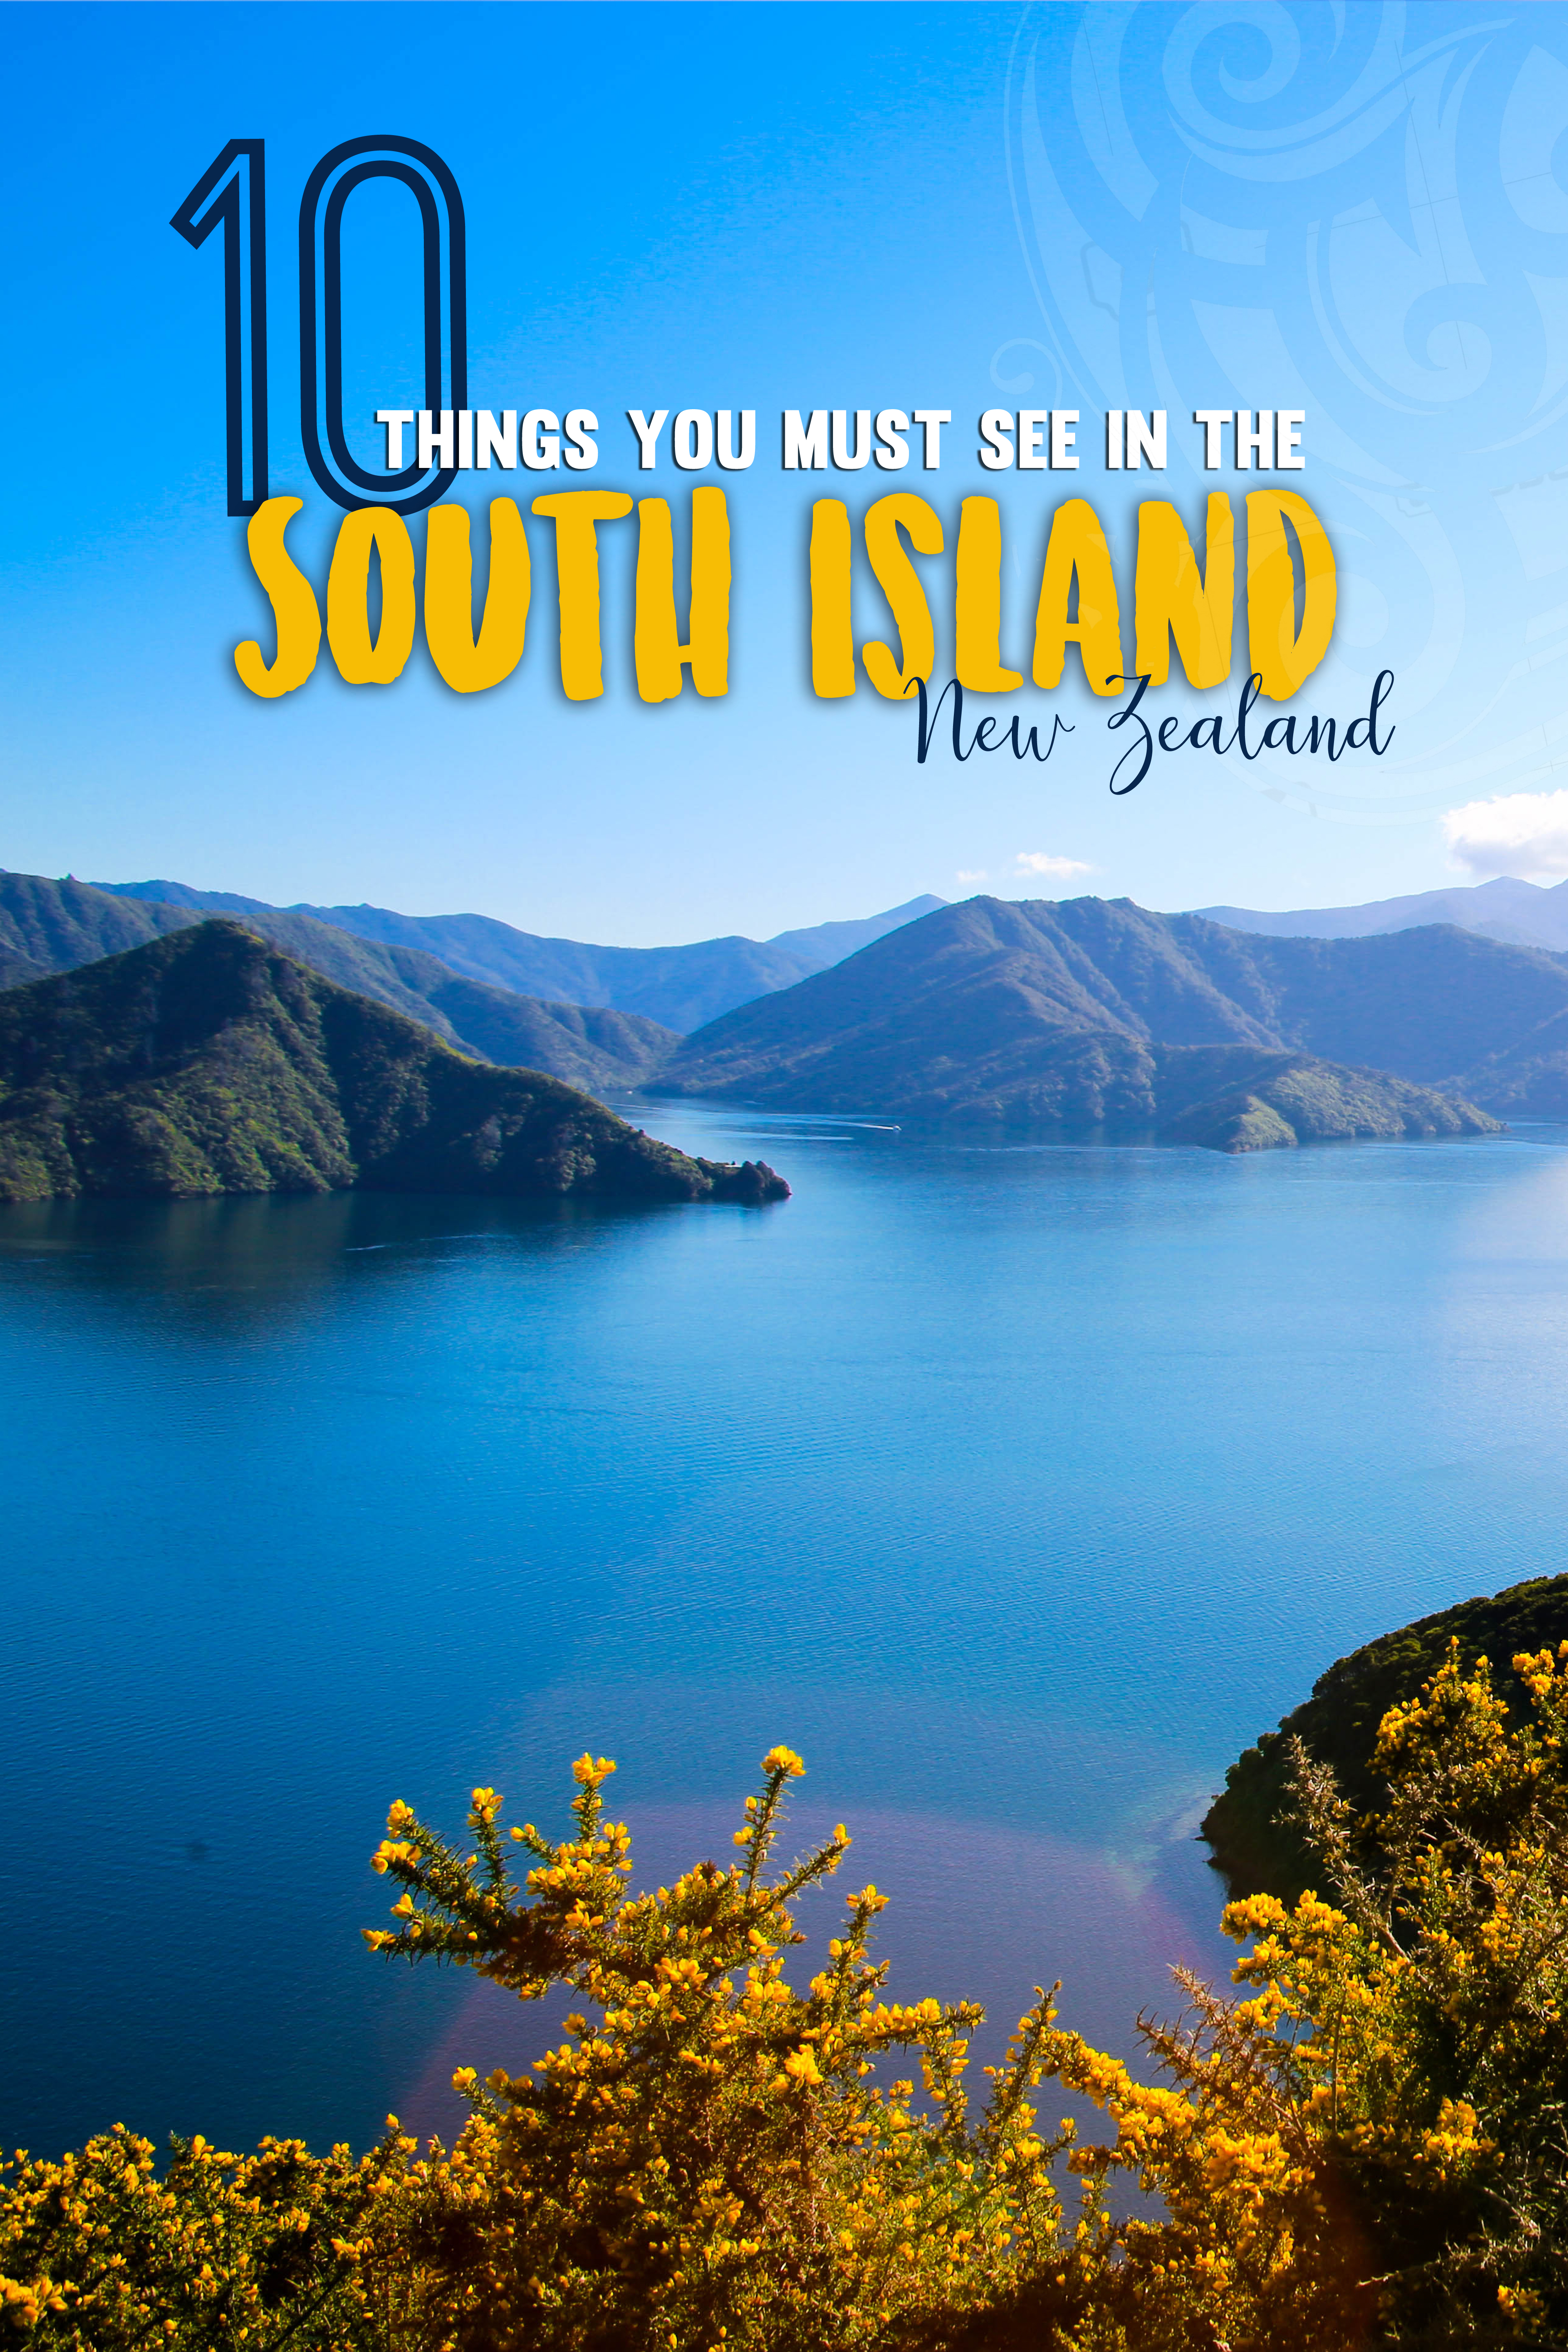 10 Things You Must See in the South Island, New Zealand